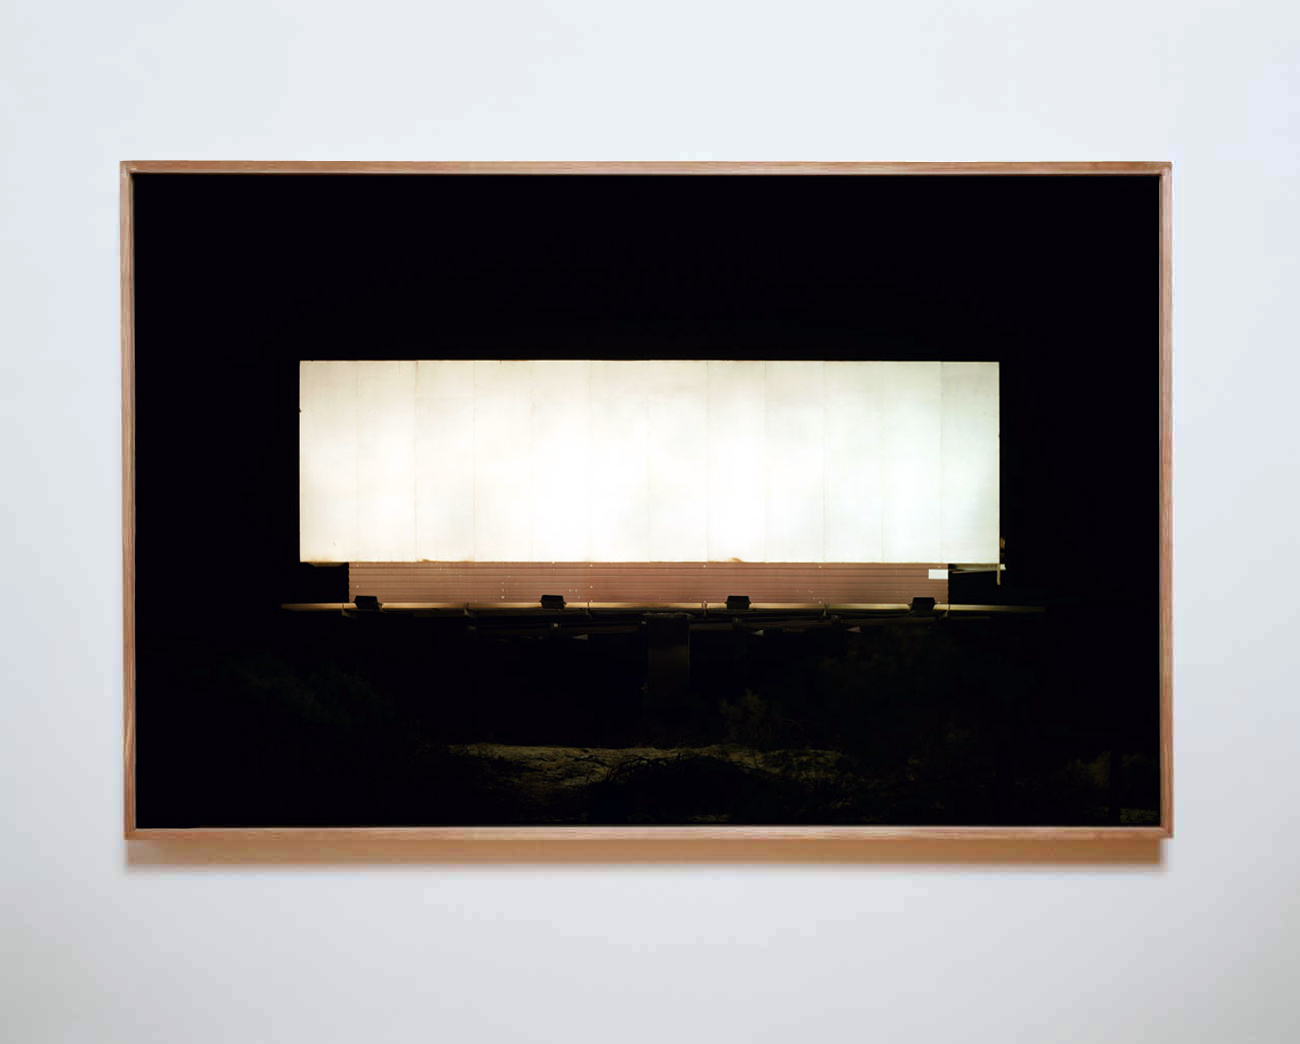 Untitled (Coming Soon) 2007 chromogenic print on Dibond with Alowood frame